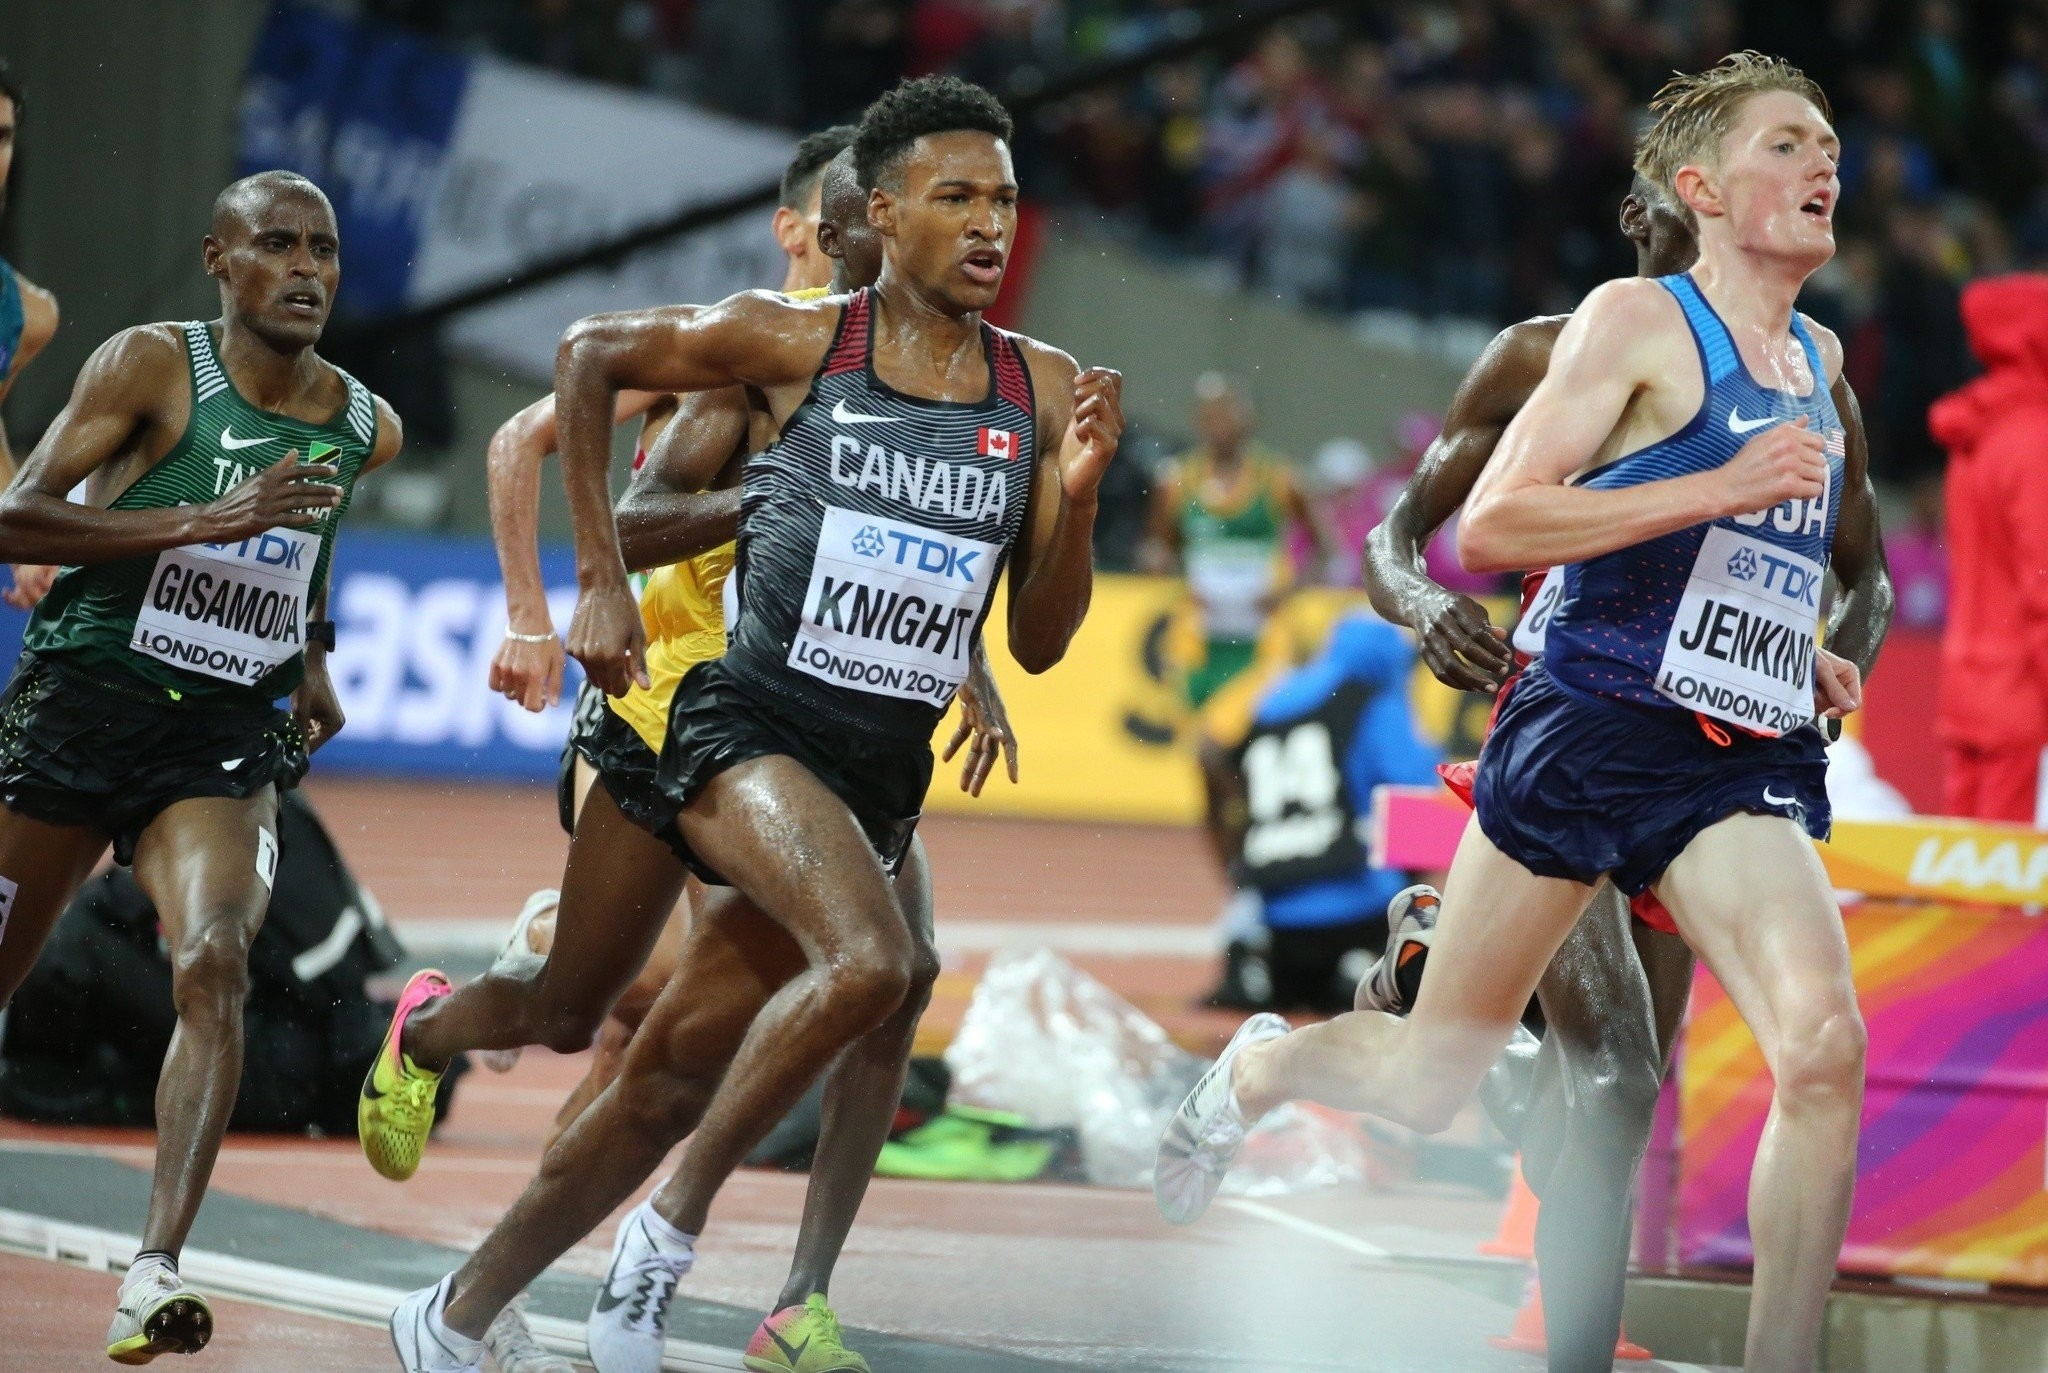 Canada´s Justyn Knight will race the 3,000m at the 112th NYRR Millrose Indoor Games